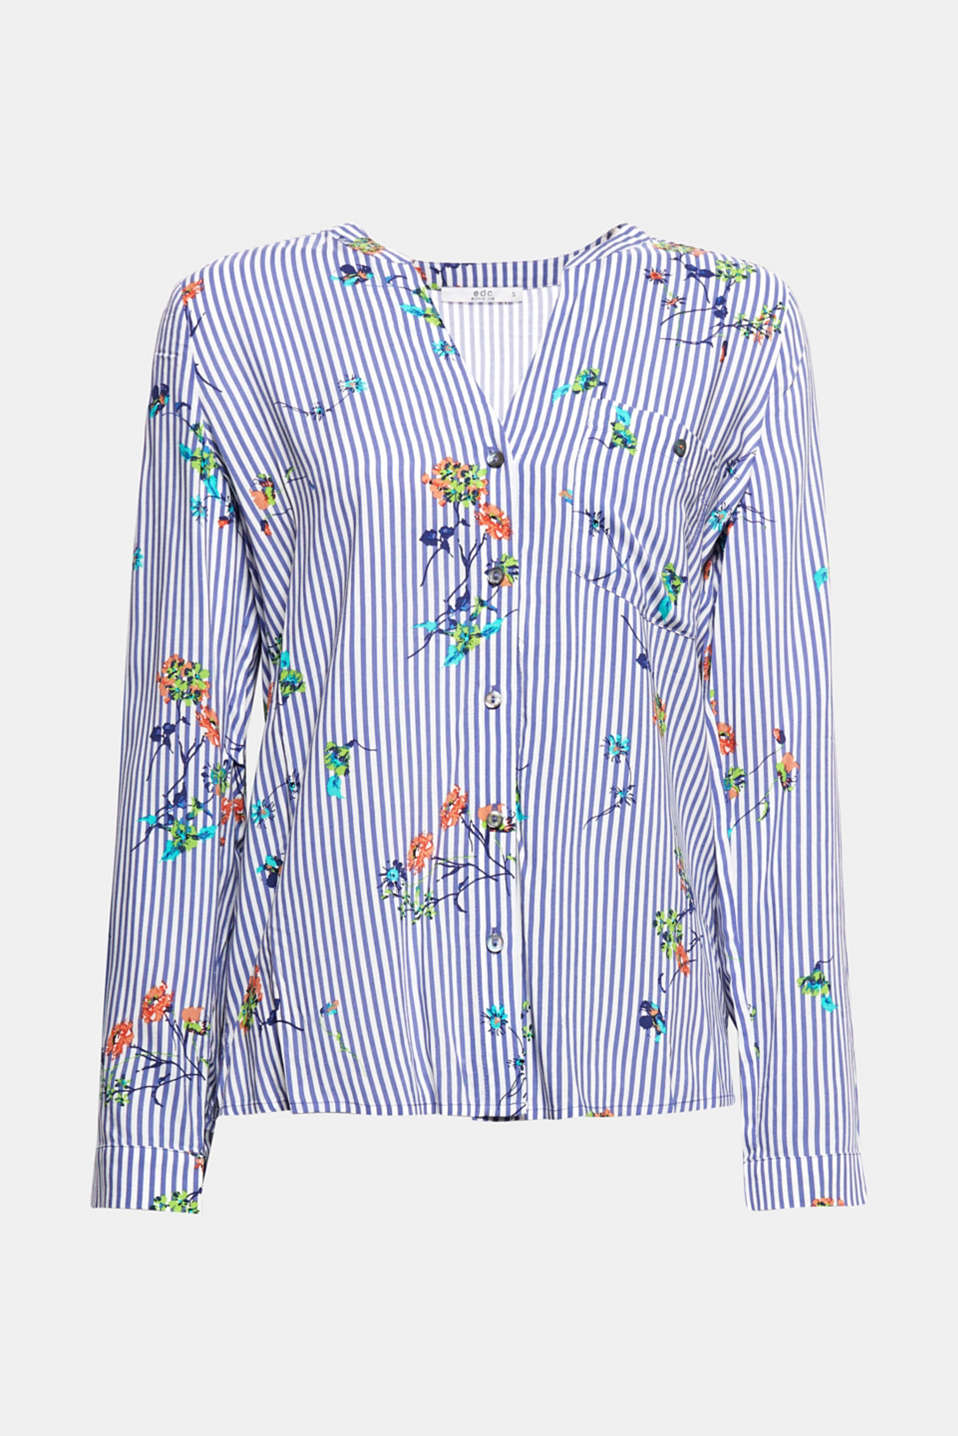 This fine blouse with a super fresh mixed pattern consisting of stripes and romantic flowers is the perfect choice for your spring look.